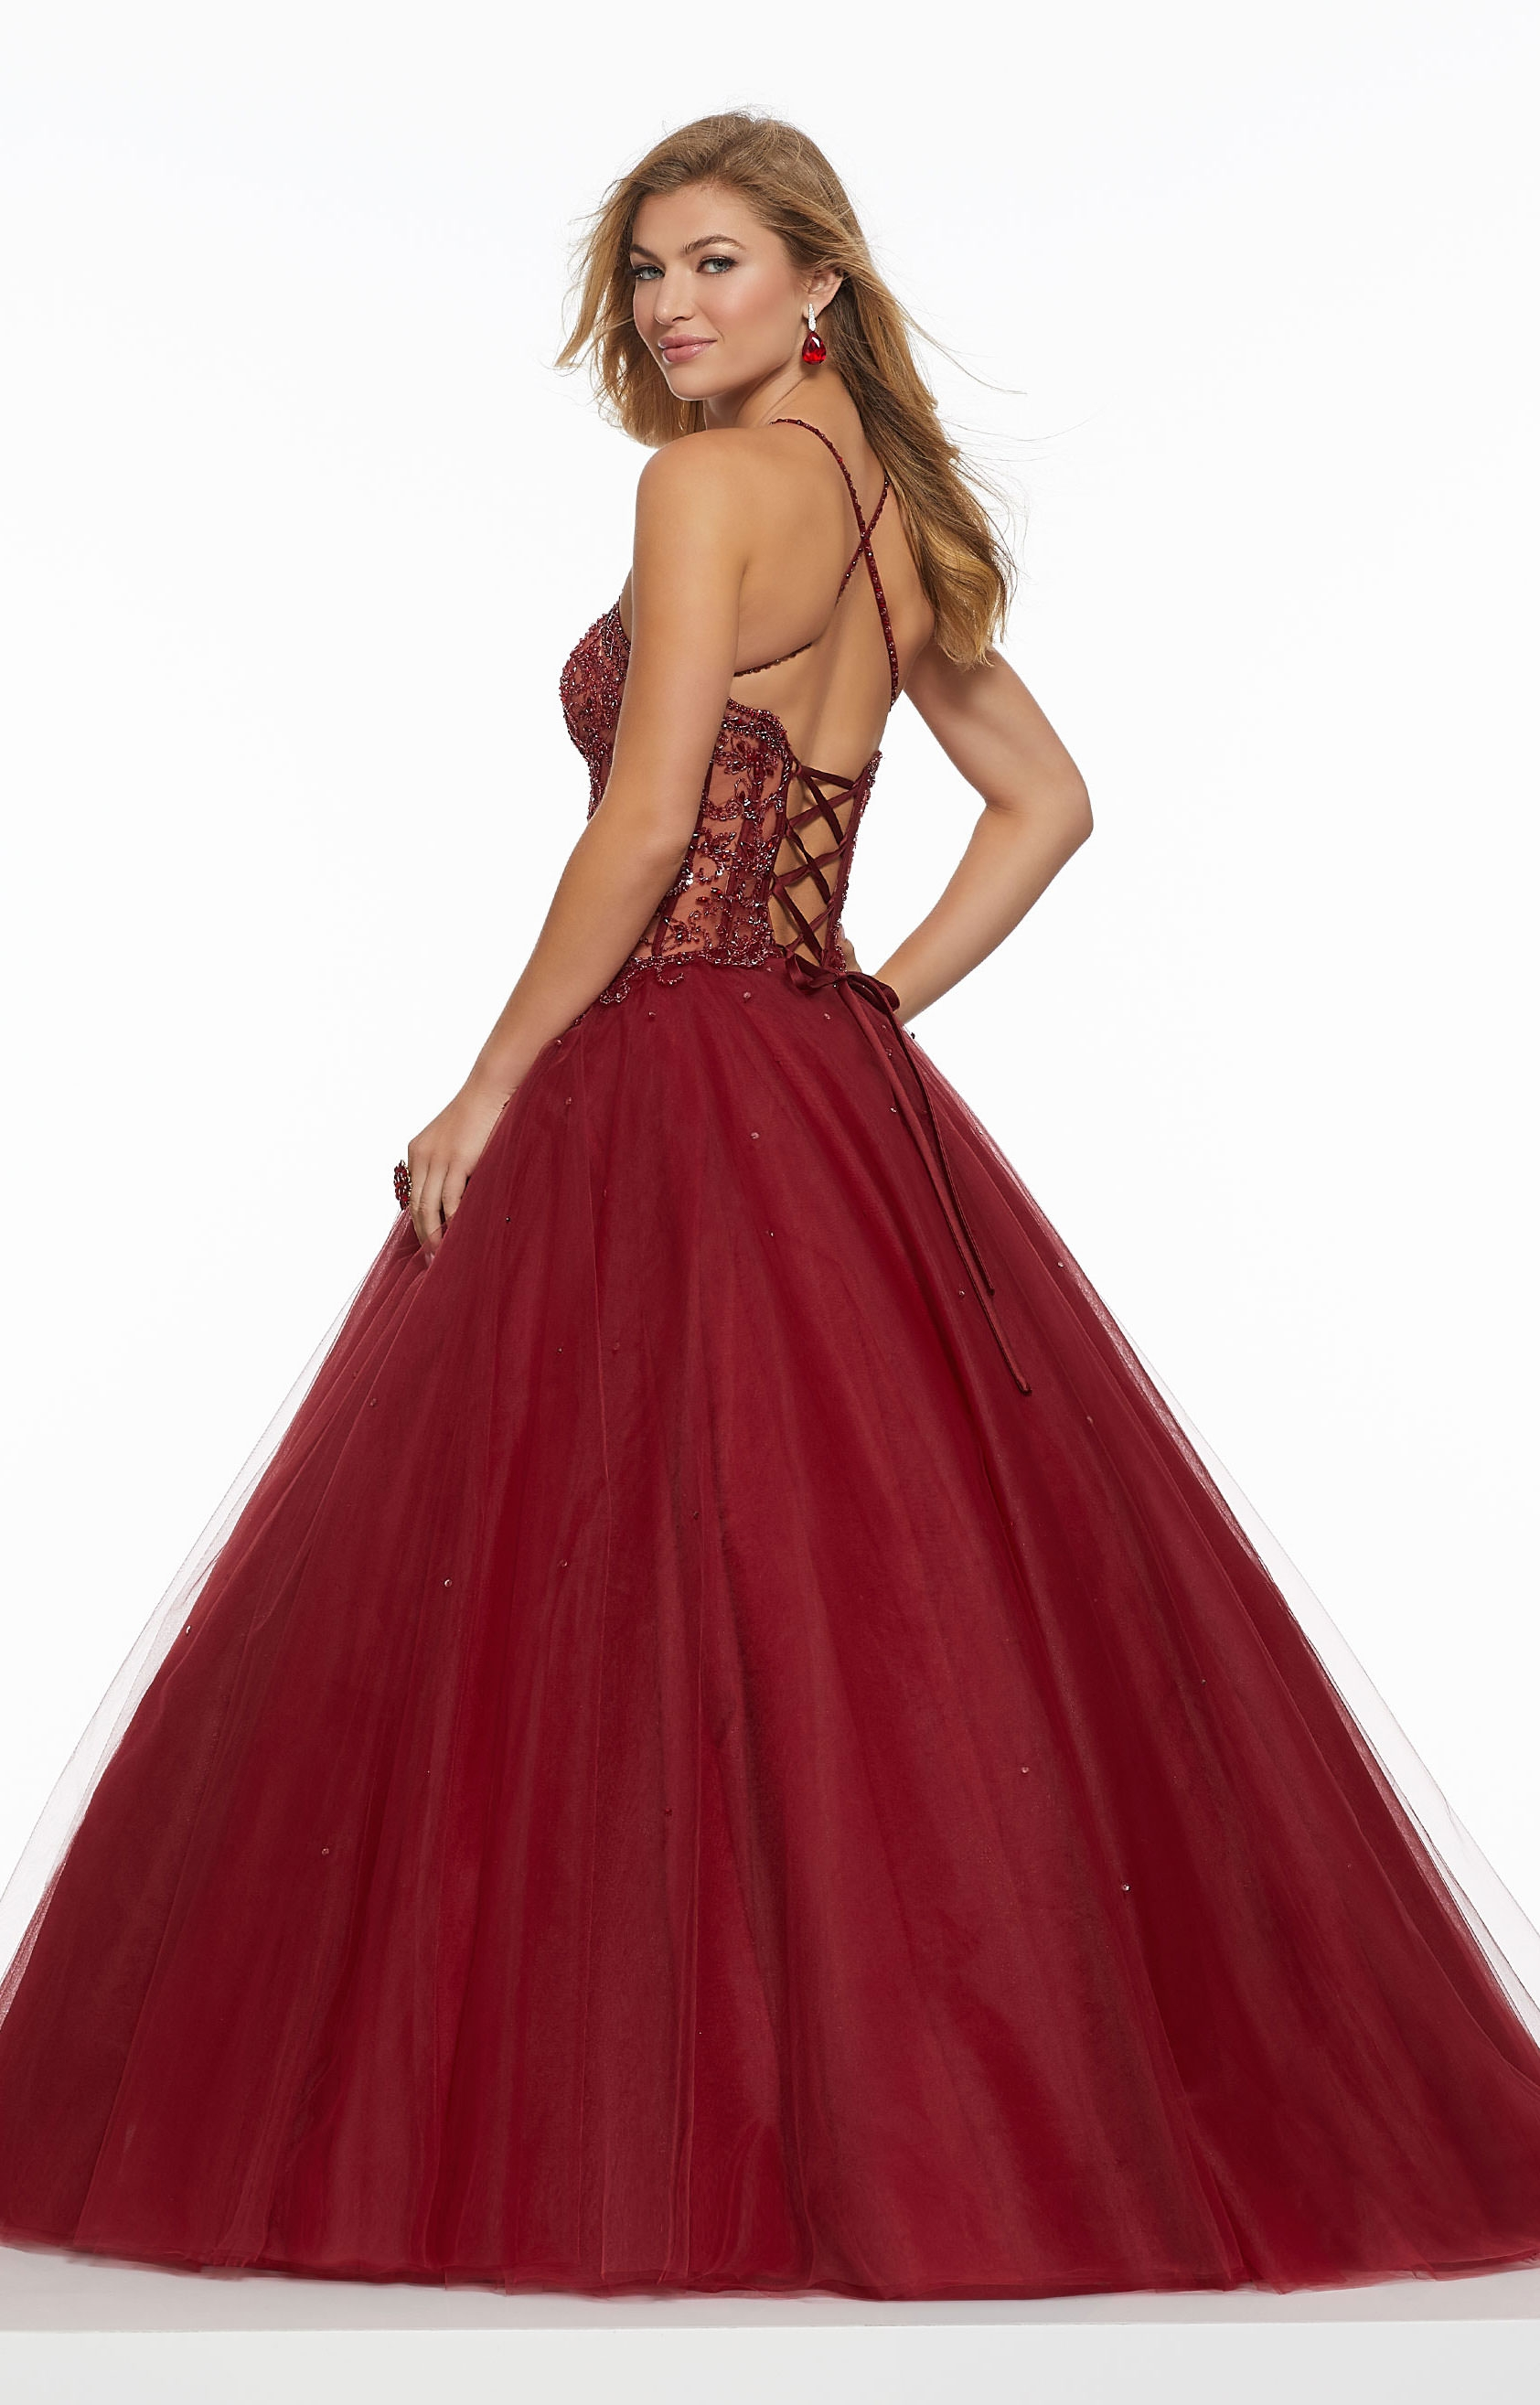 Mori Lee Prom 43033 - Sheer Beaded Corset Back Ball Gown Prom Dress